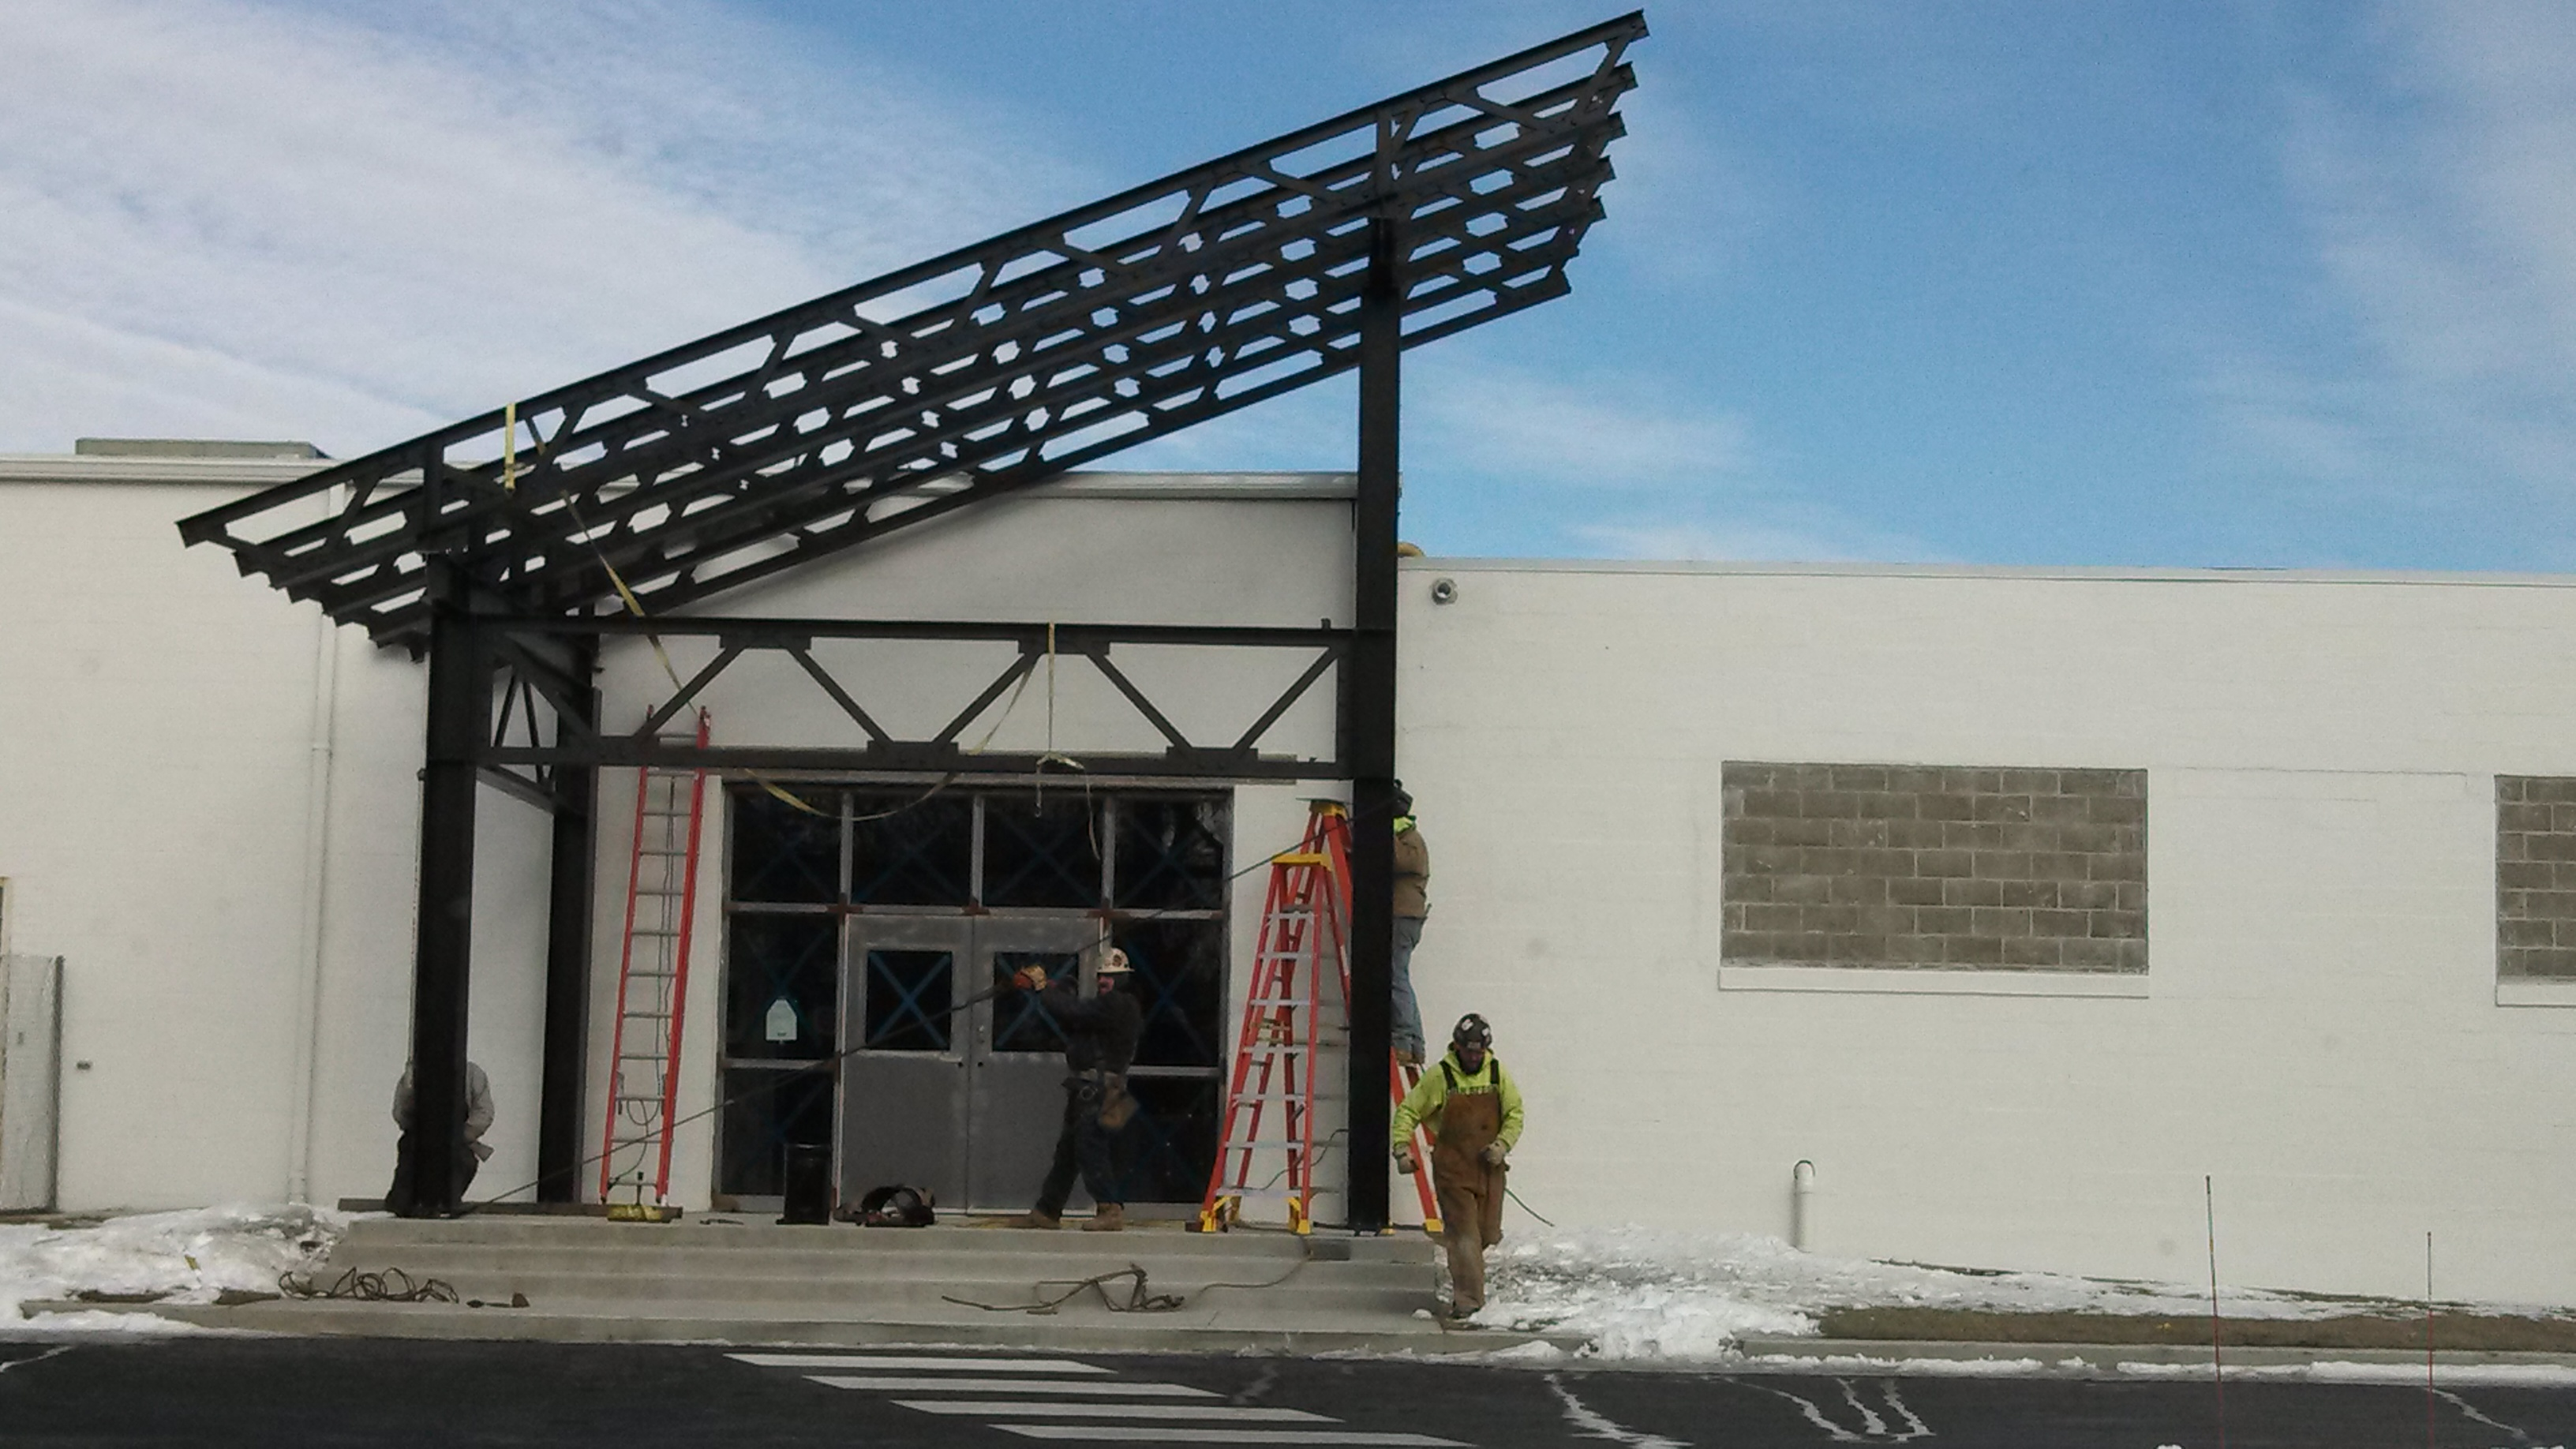 Erection crews put the finishing touches on the steel canopies. & Mikeu0027s Famous Harley-Davidson Picks QSR | QSR Steel Corporation